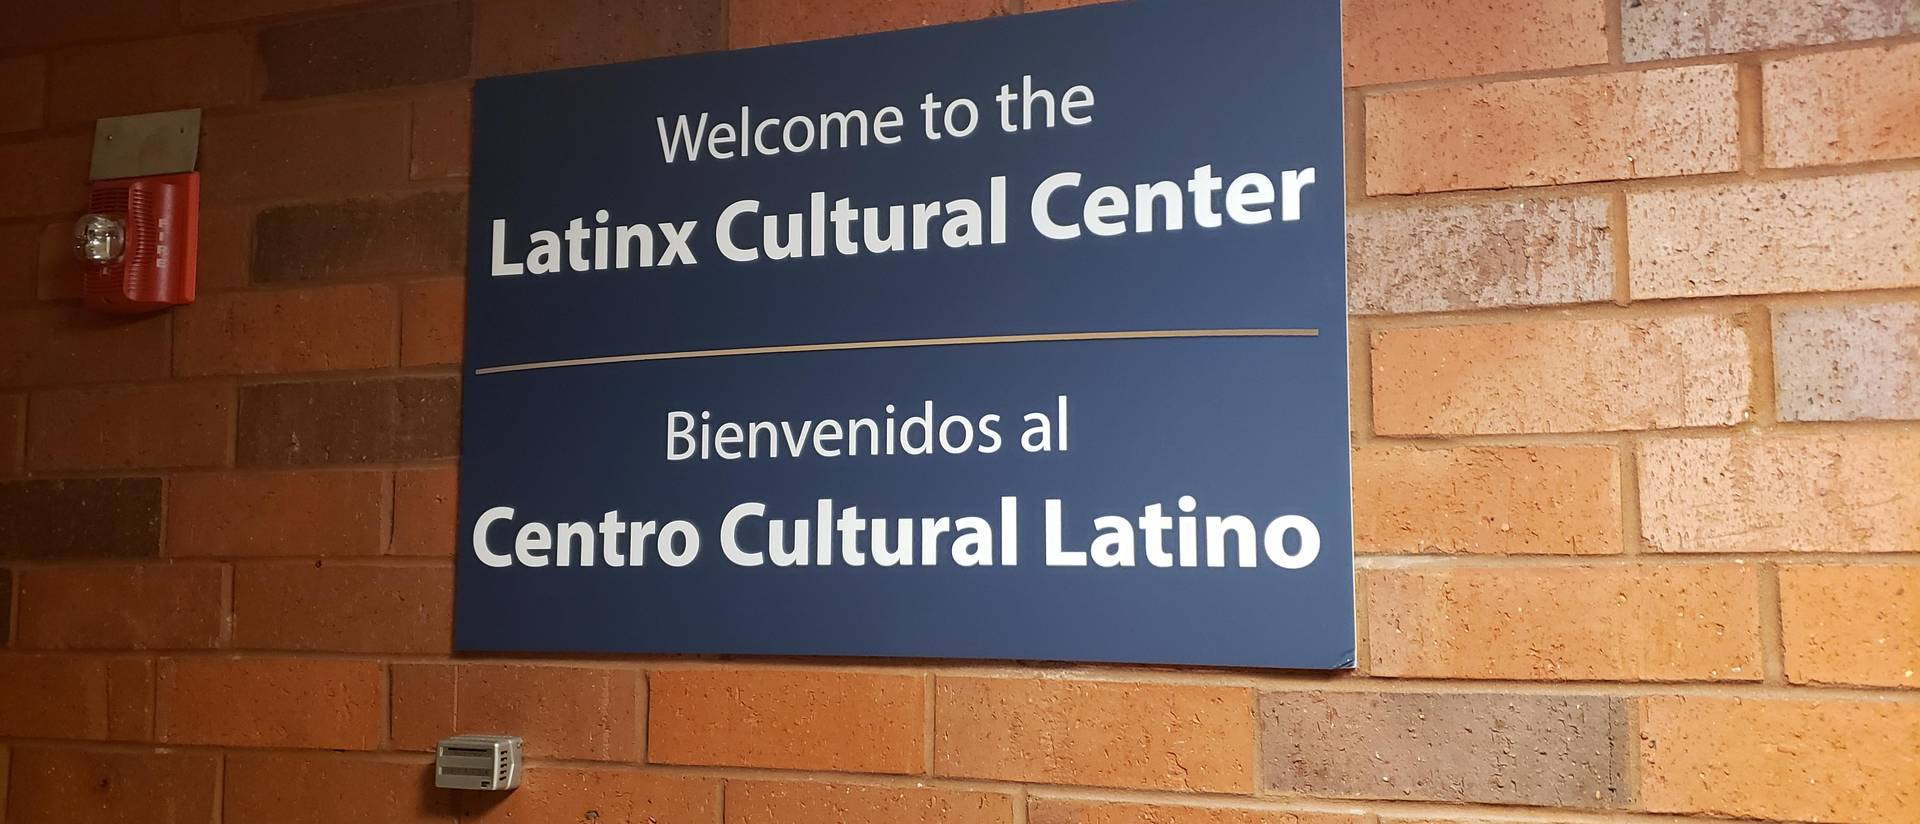 Signage for new Latinx Cultural Center